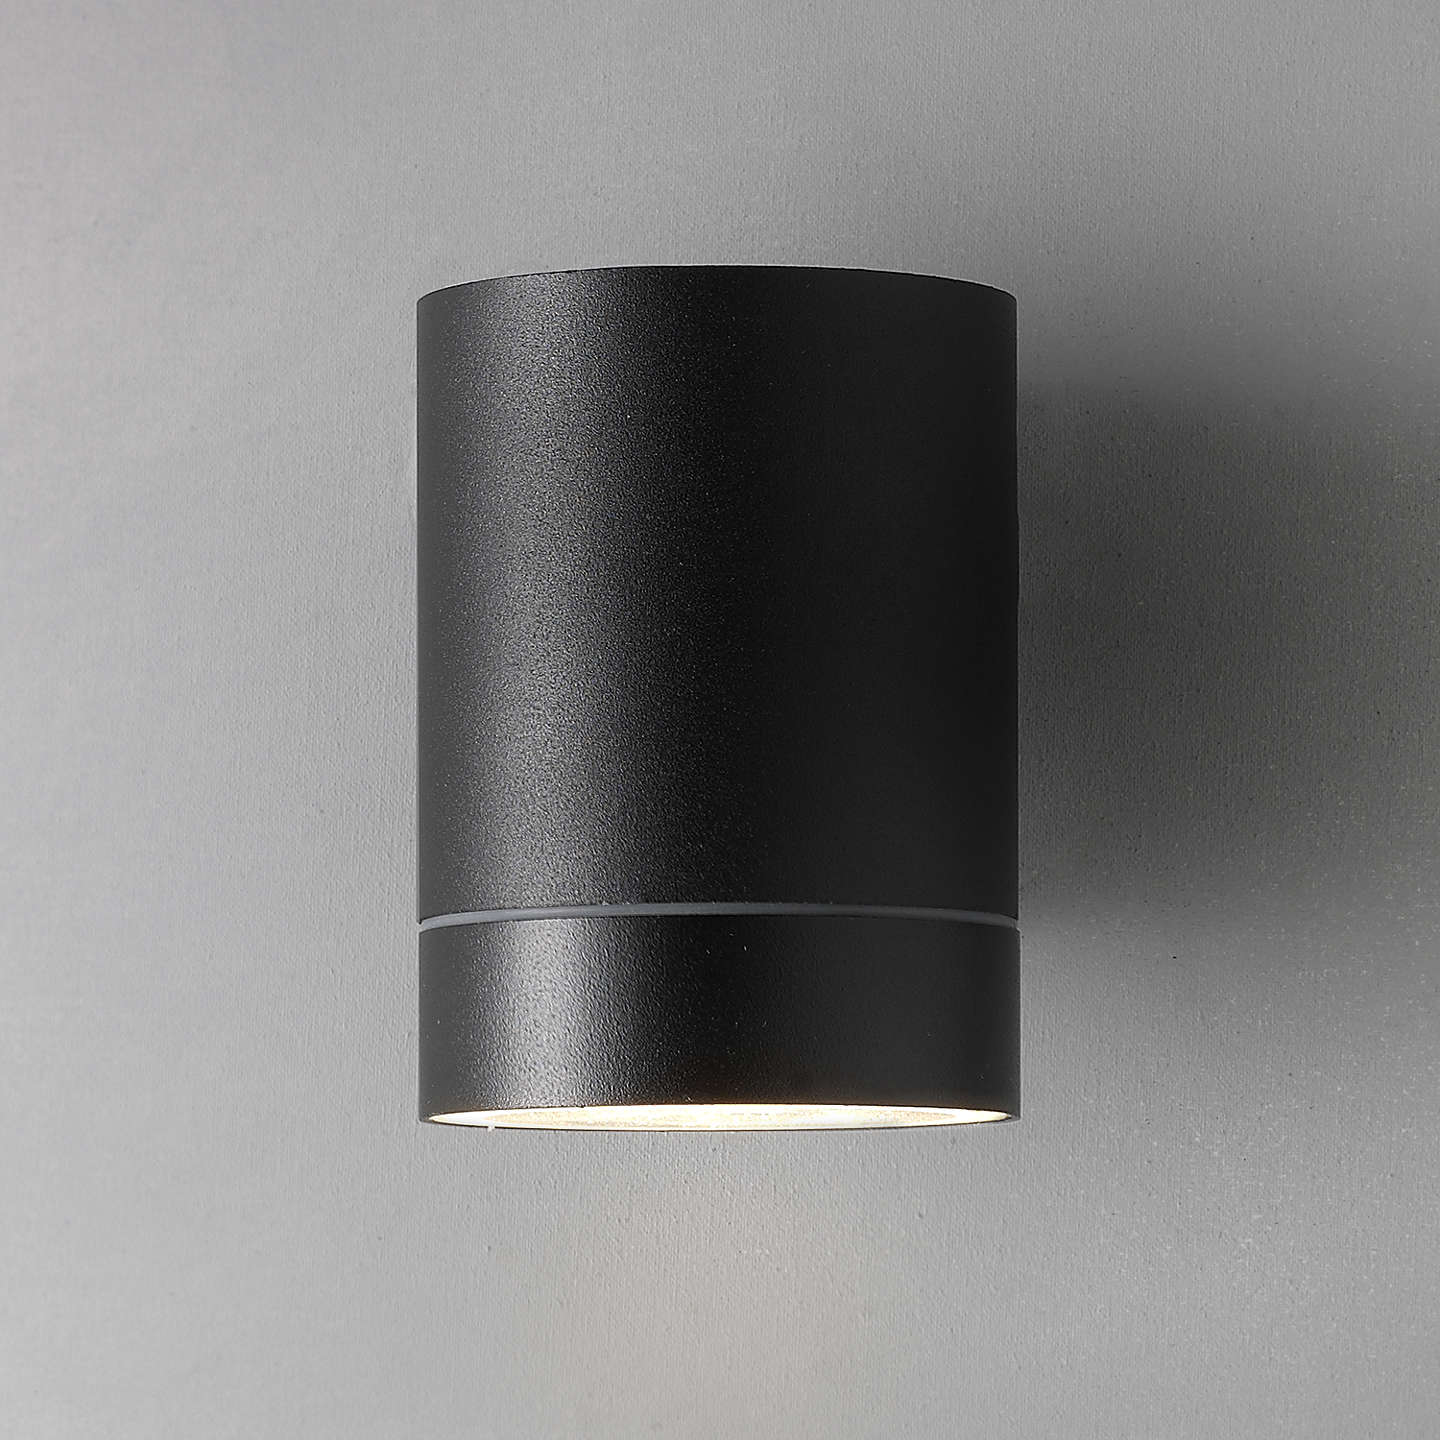 Nordlux tin maxi outdoor wall light black at john lewis buynordlux tin maxi outdoor wall light black online at johnlewis mozeypictures Image collections